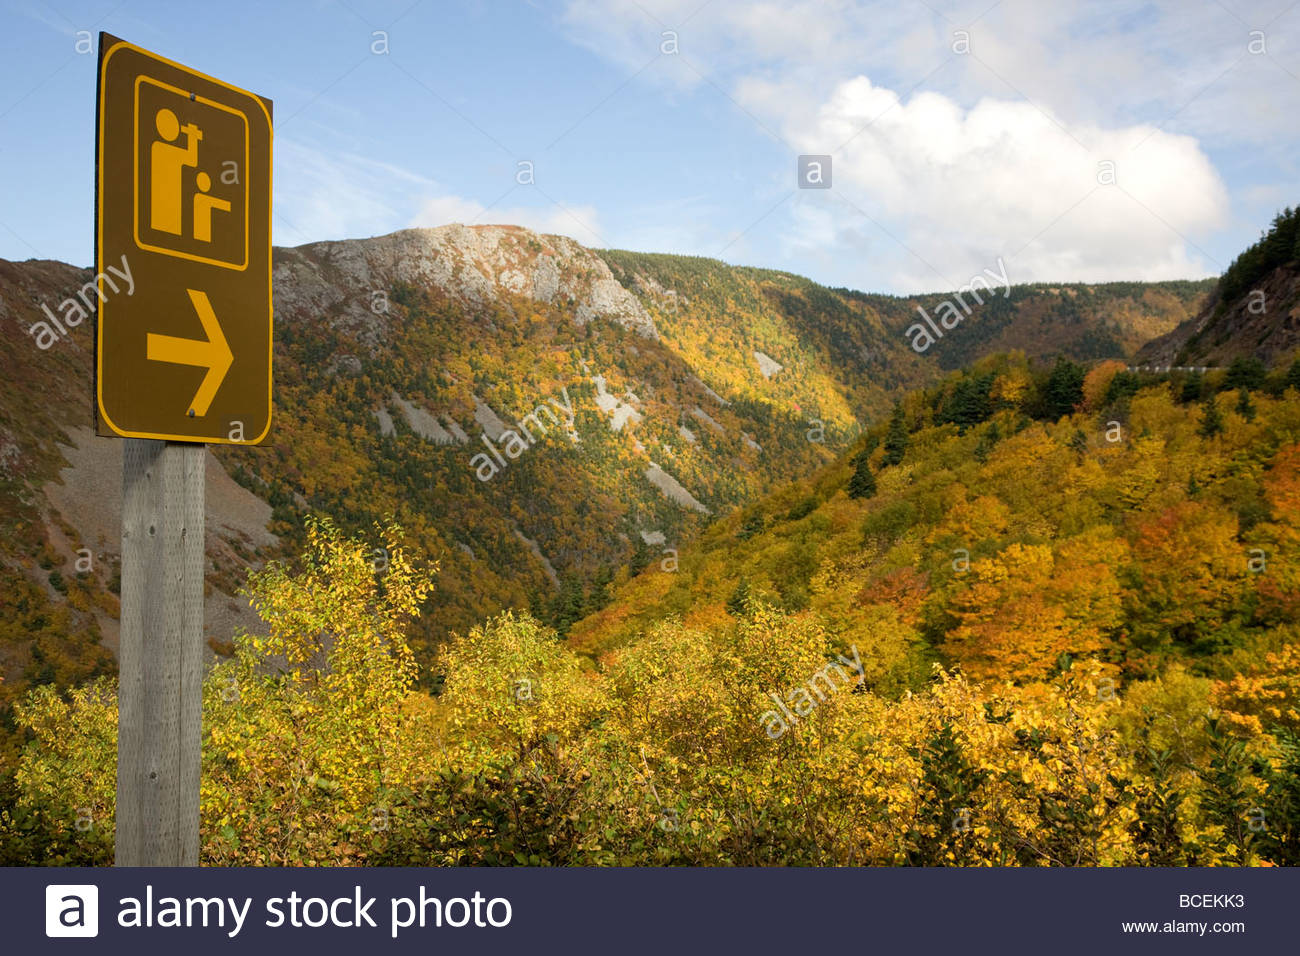 A sign indications a look out point along the Cabot Trail. - Stock Image